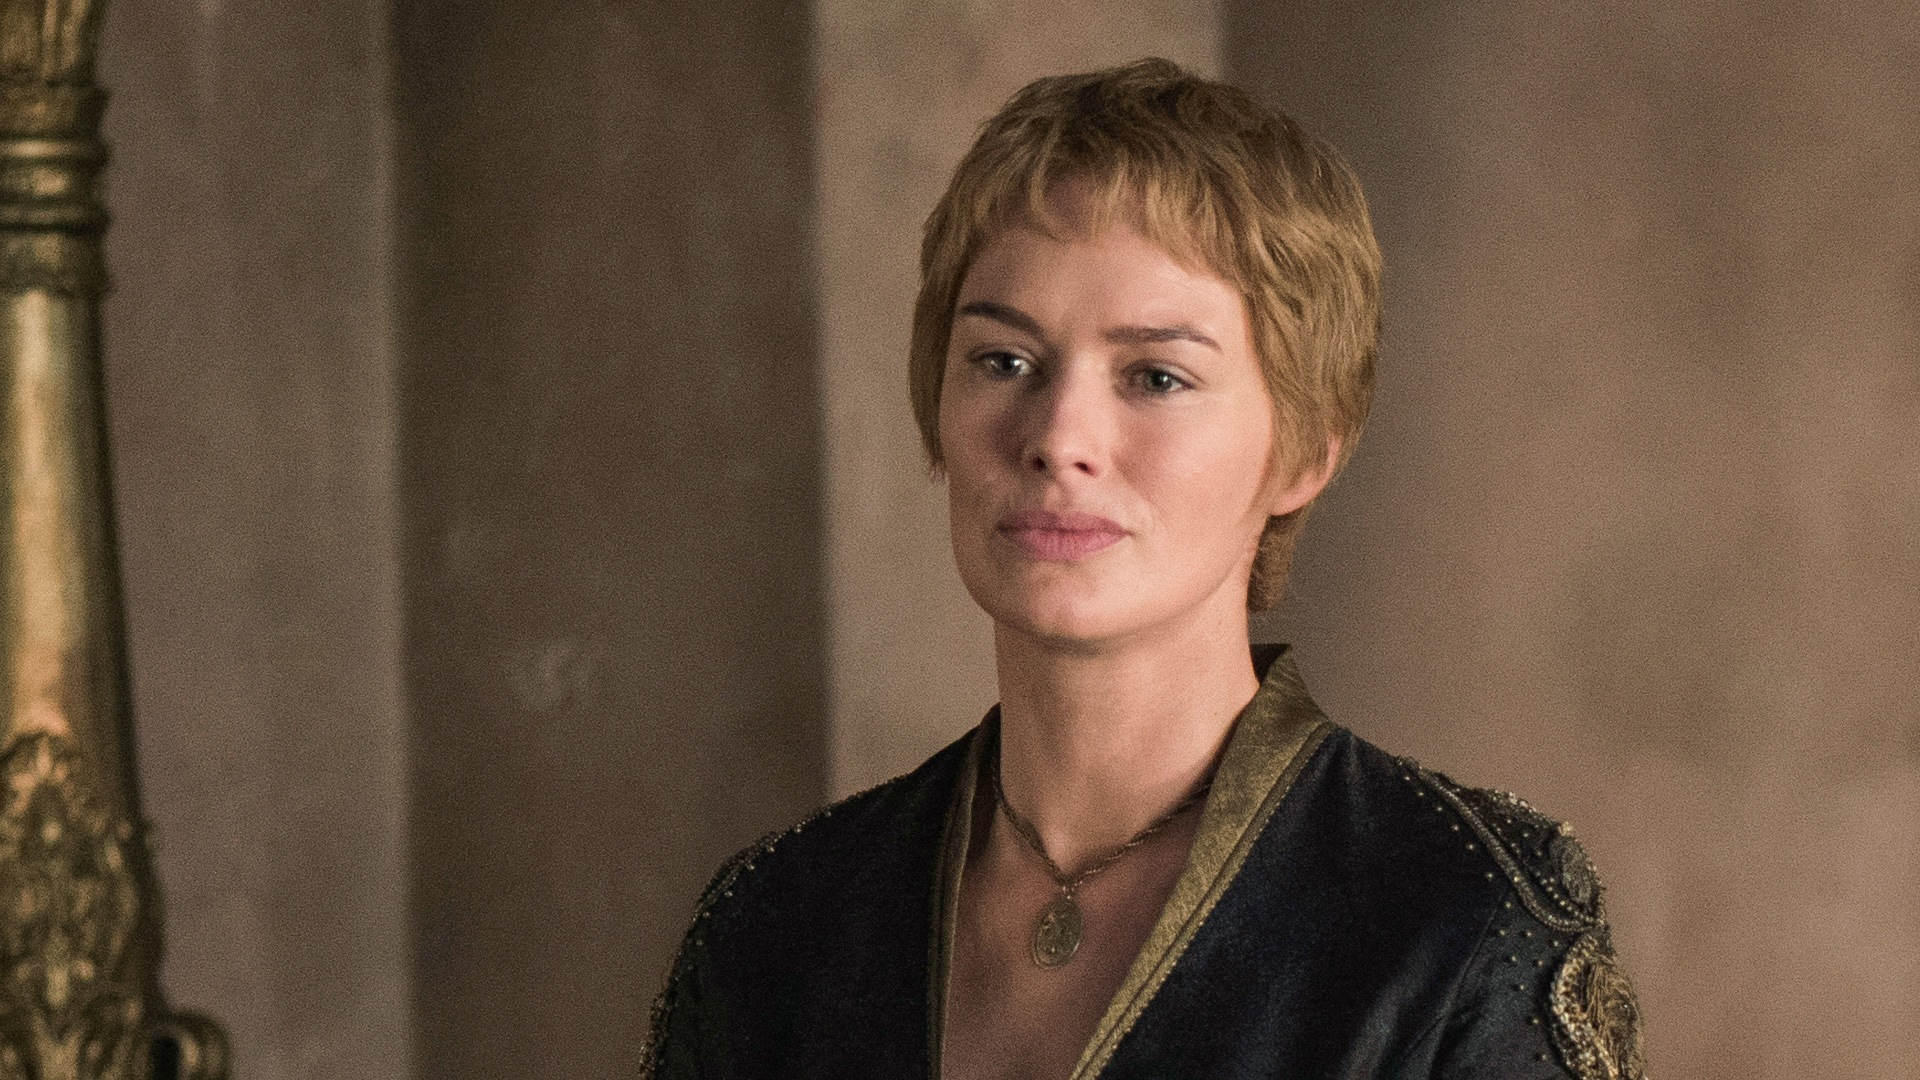 cersei stands in front of wall